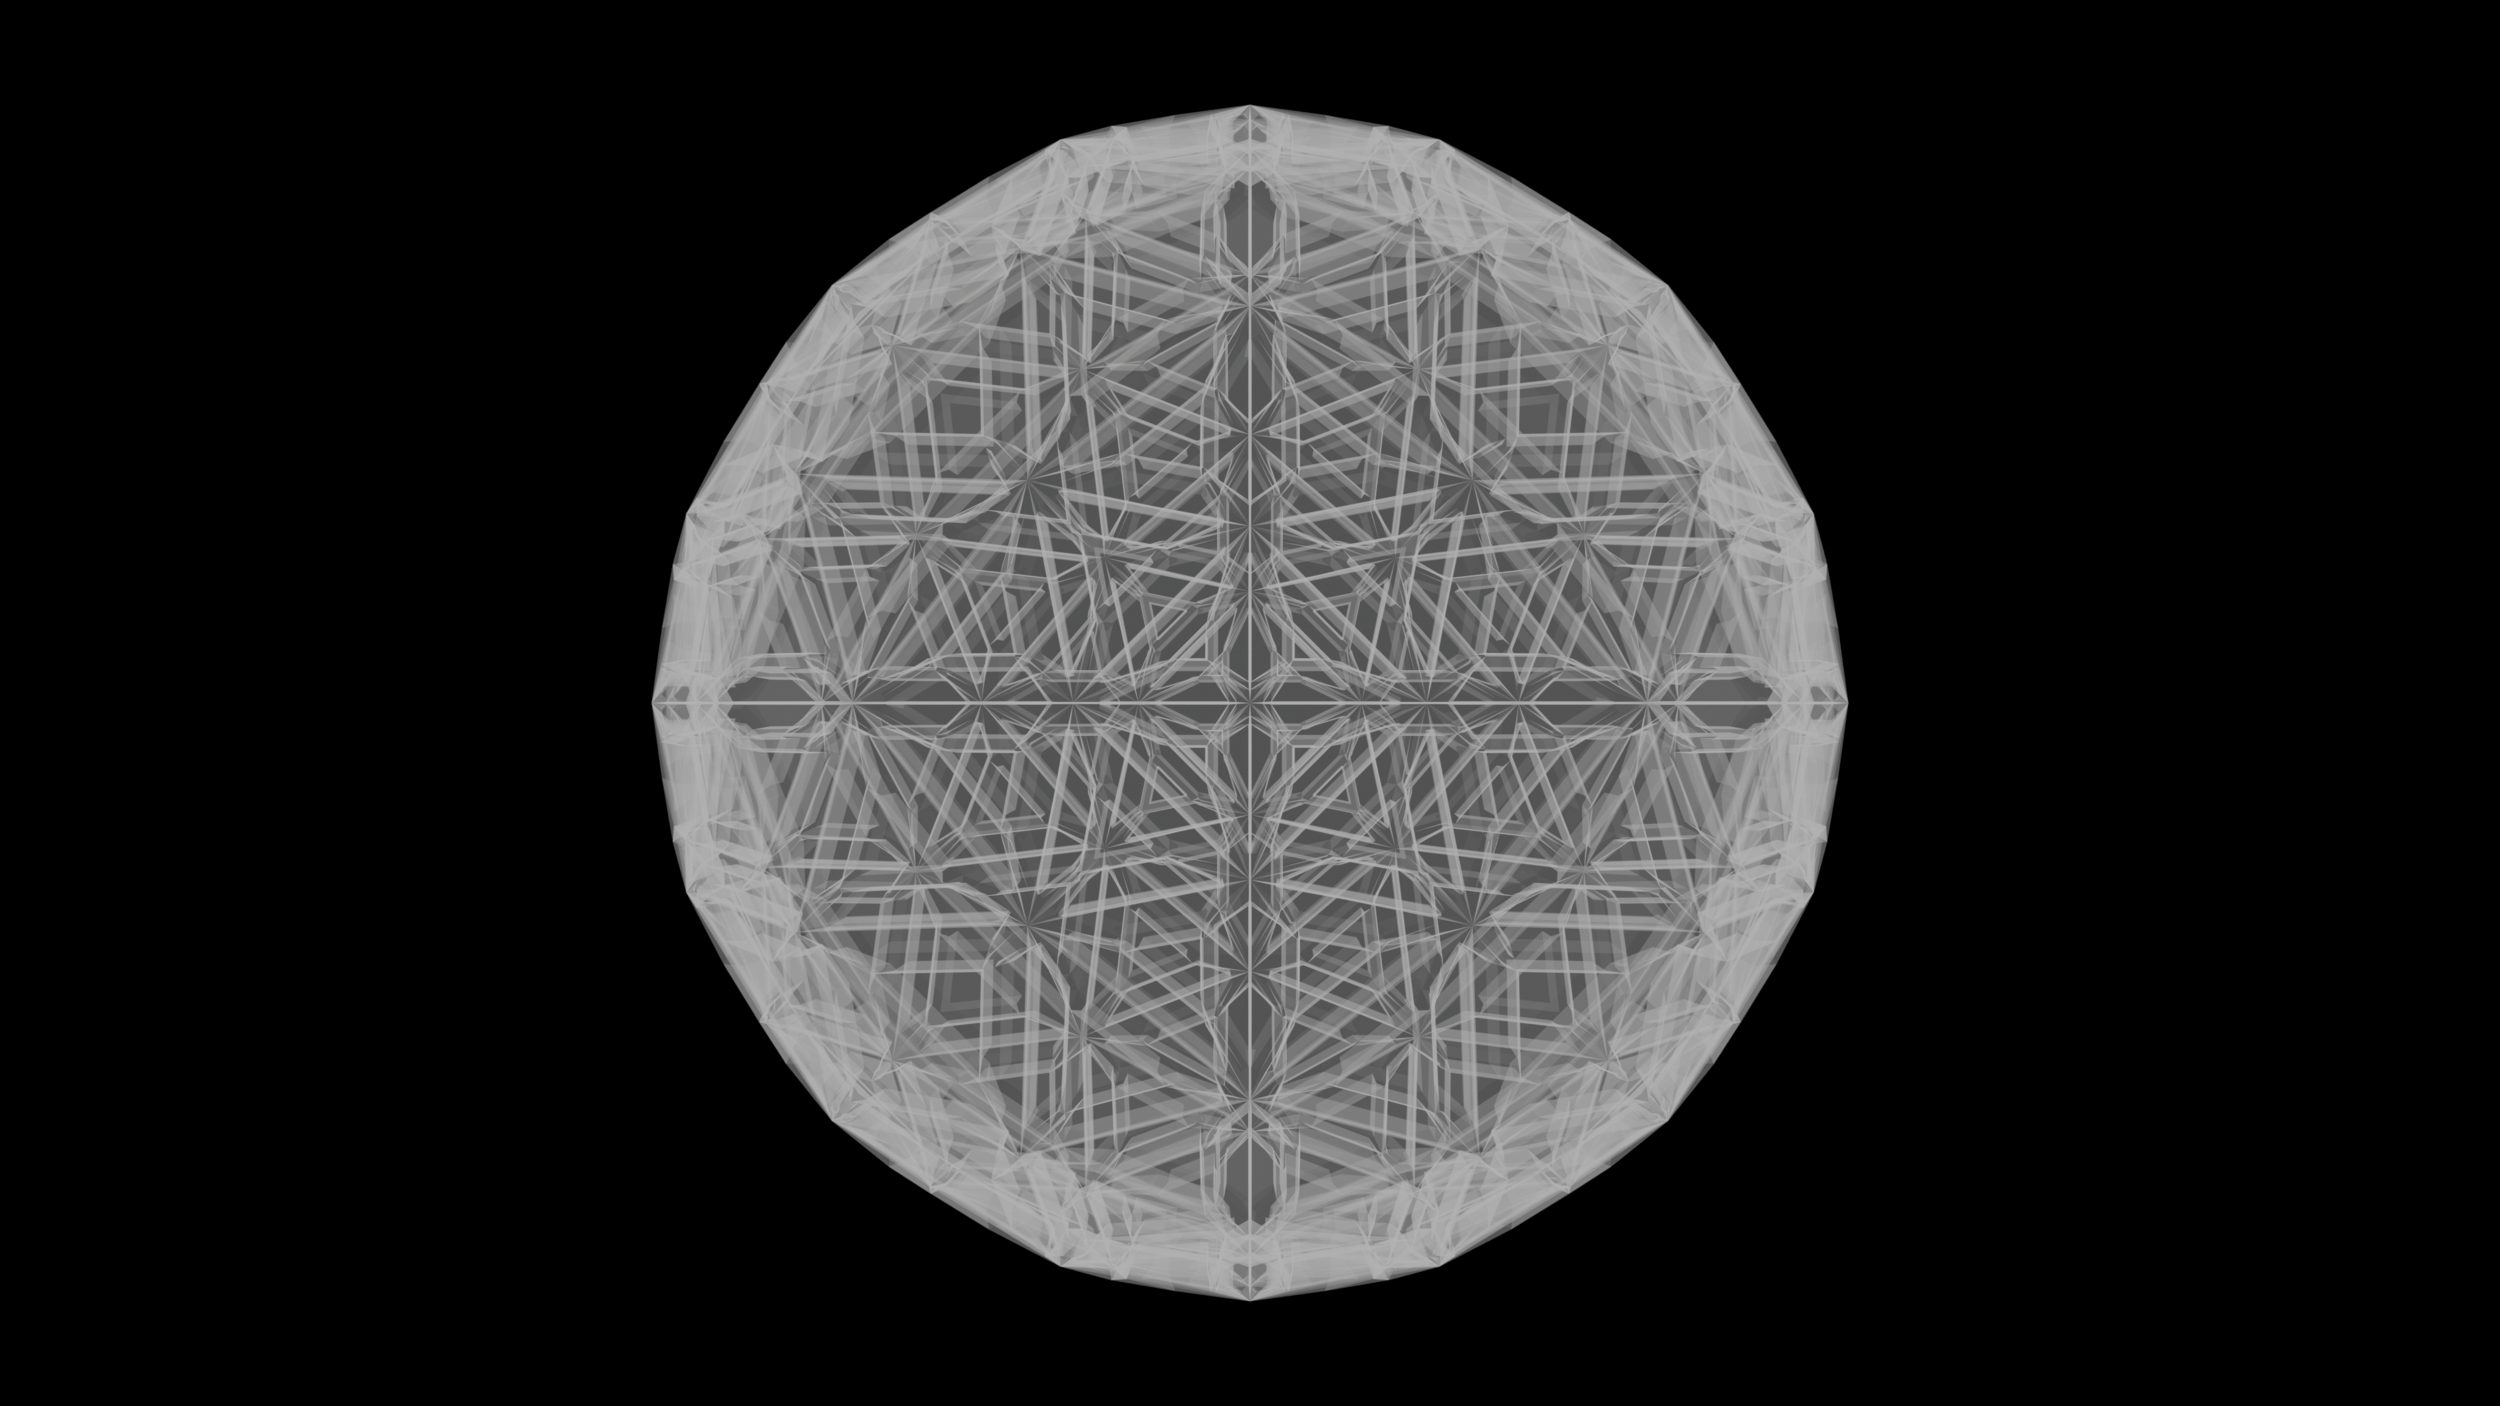 hex sphere fracture 10.png